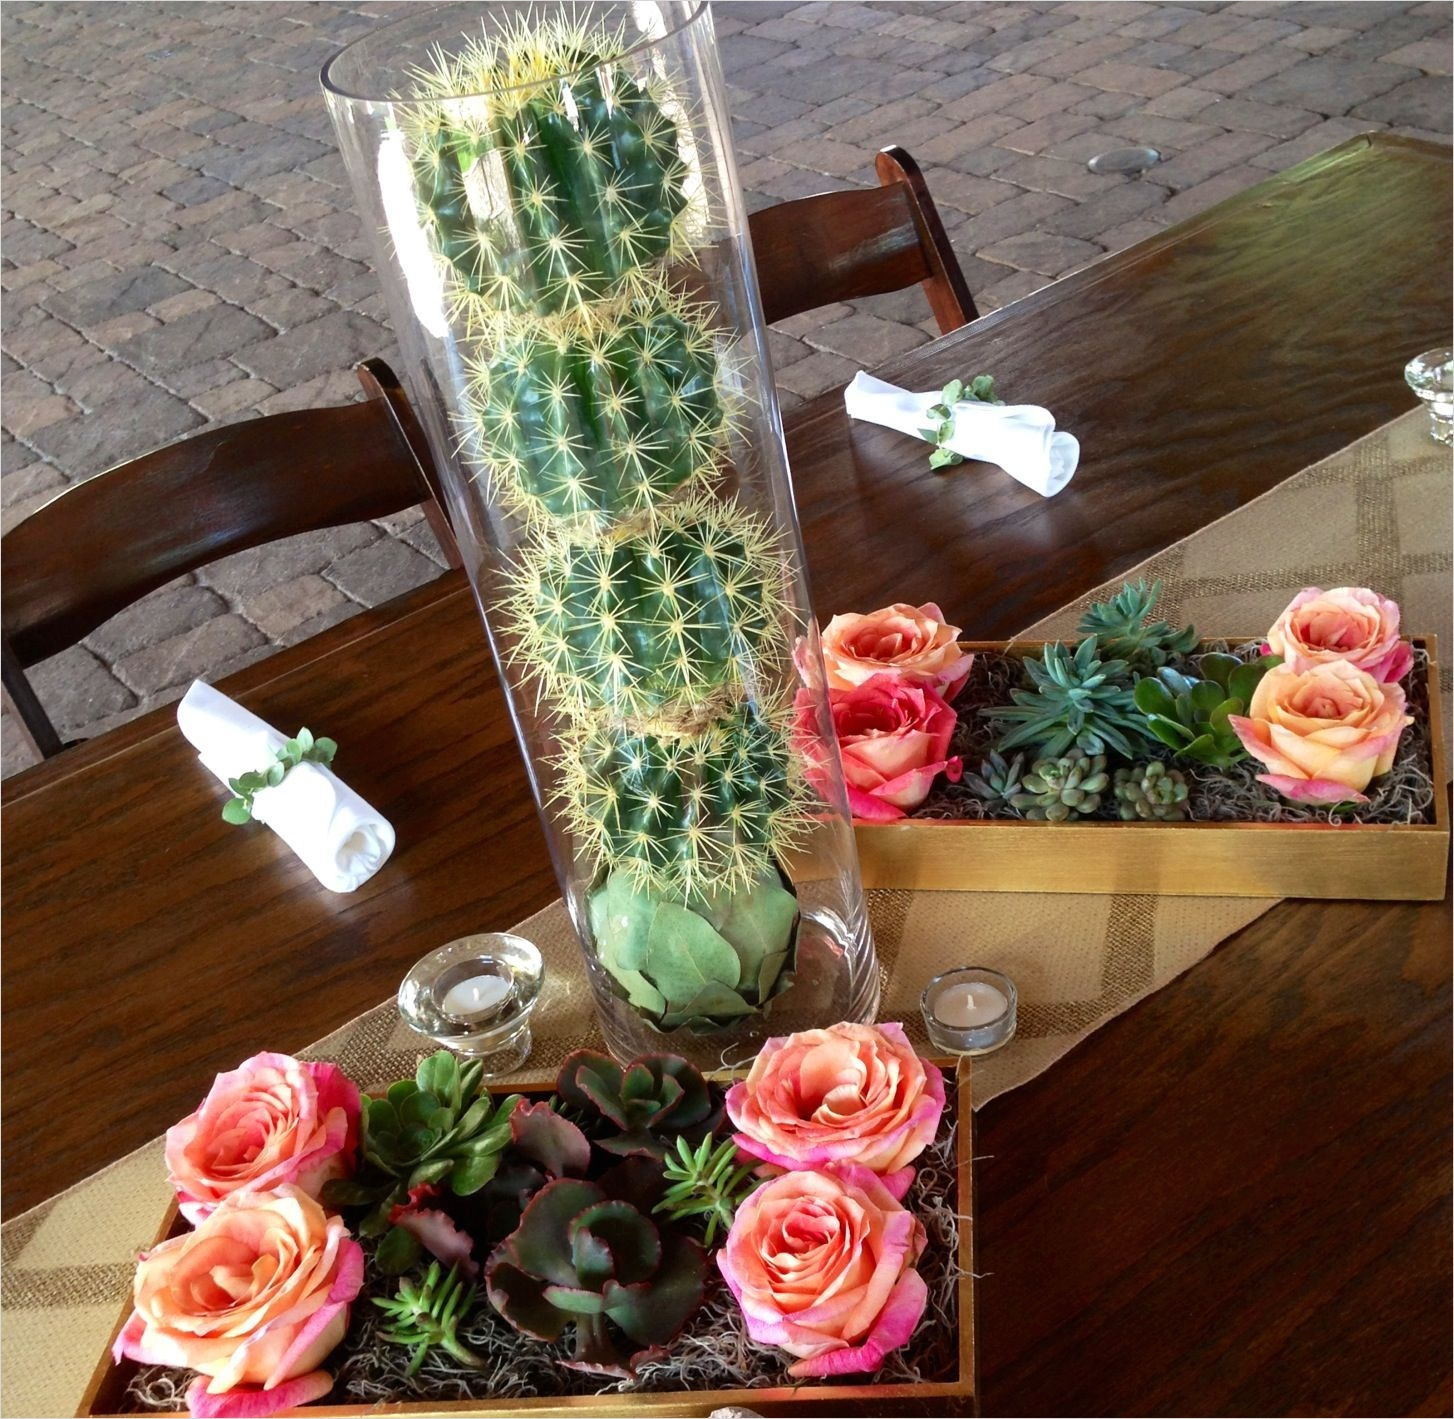 43 Beautiful Cactus Centerpiece Ideas 43 Desert Centerpieces Barrel Cacti Succulents and Big Fun Roses and Eucalyptus Napkin Wraps 8